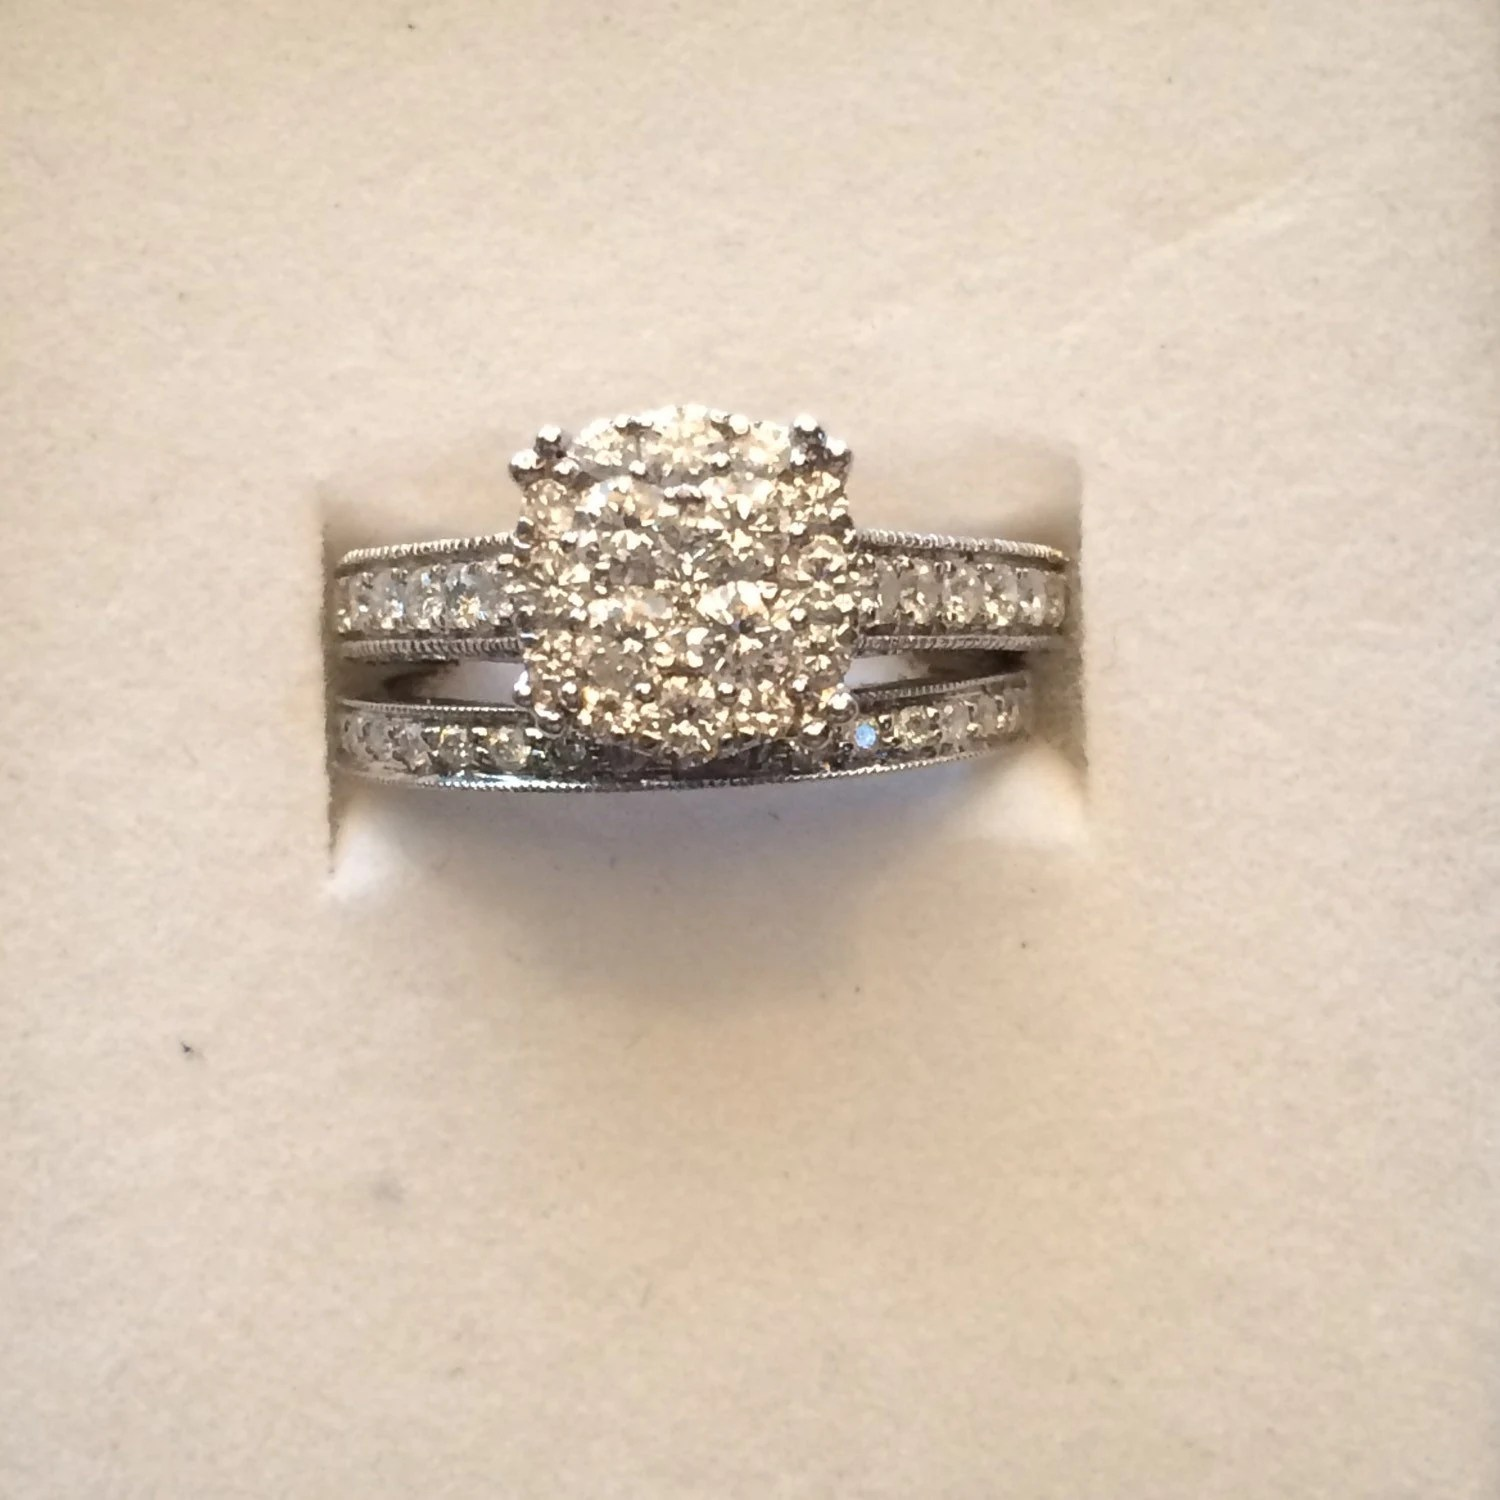 Vintage Diamond Engagement Ring And Wedding Band Set With